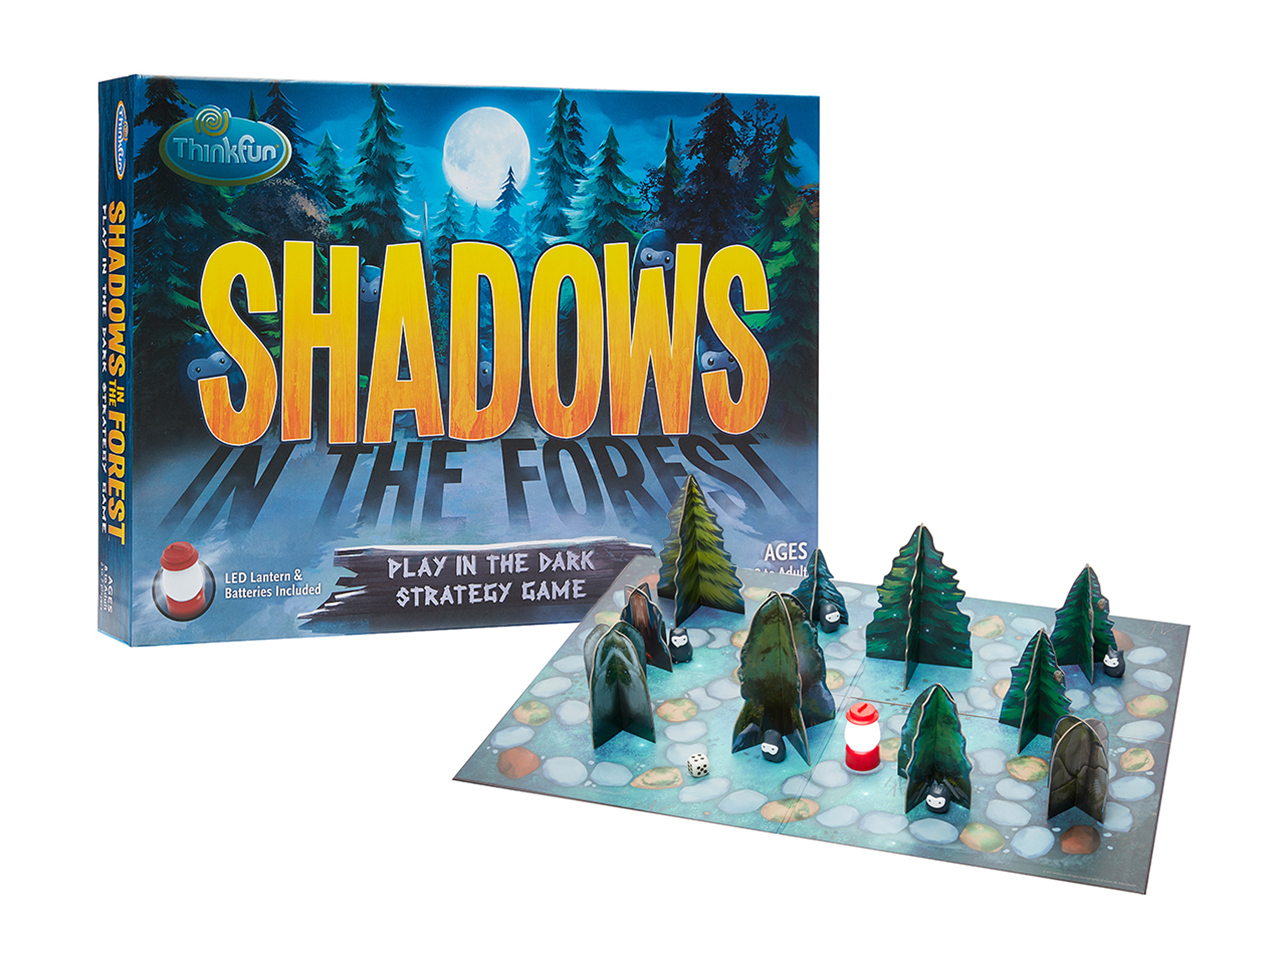 Shadows in the Forest game: A strategic board game with a nighttime forest theme